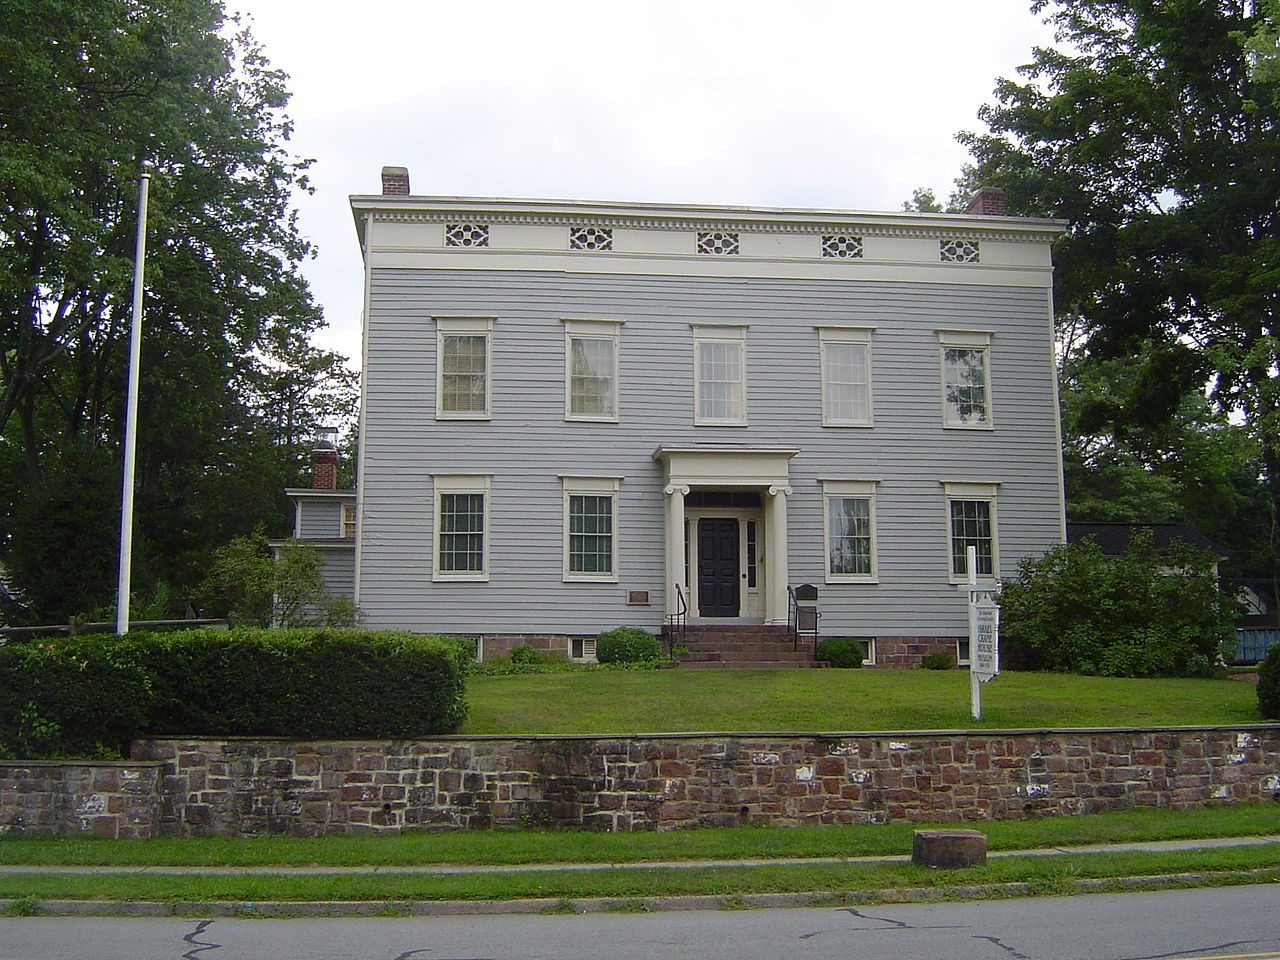 The Israel Crane House was built in 1796 by its namesake. It later became the home of the YMCA for African American women and children from 1920-1965. Today, it is a museum operated by the Montclair Historical Society.